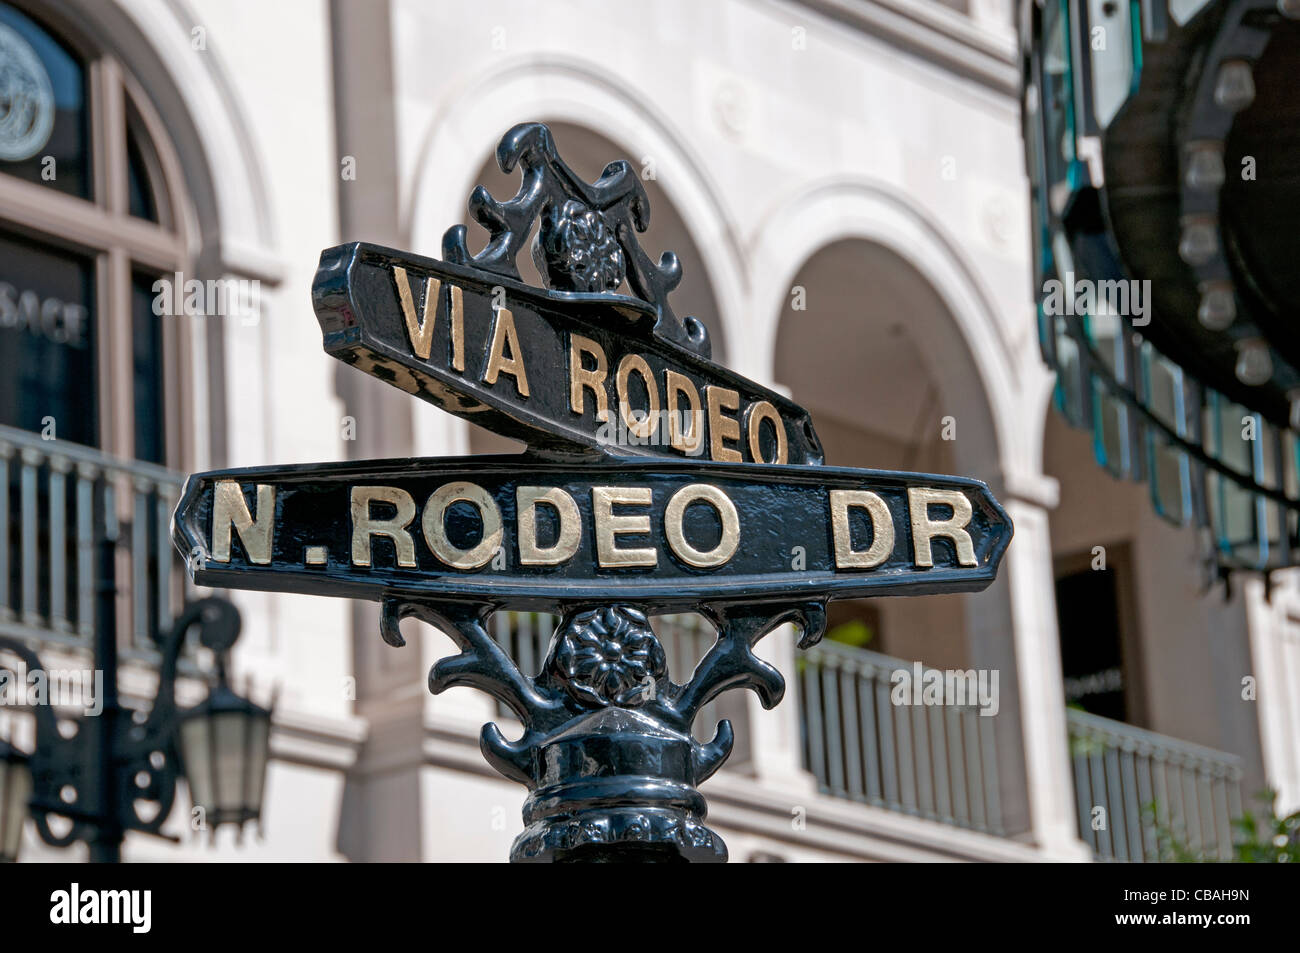 Rodeo Drive boutiques shops Beverly Hills Los Angeles California United States - Stock Image